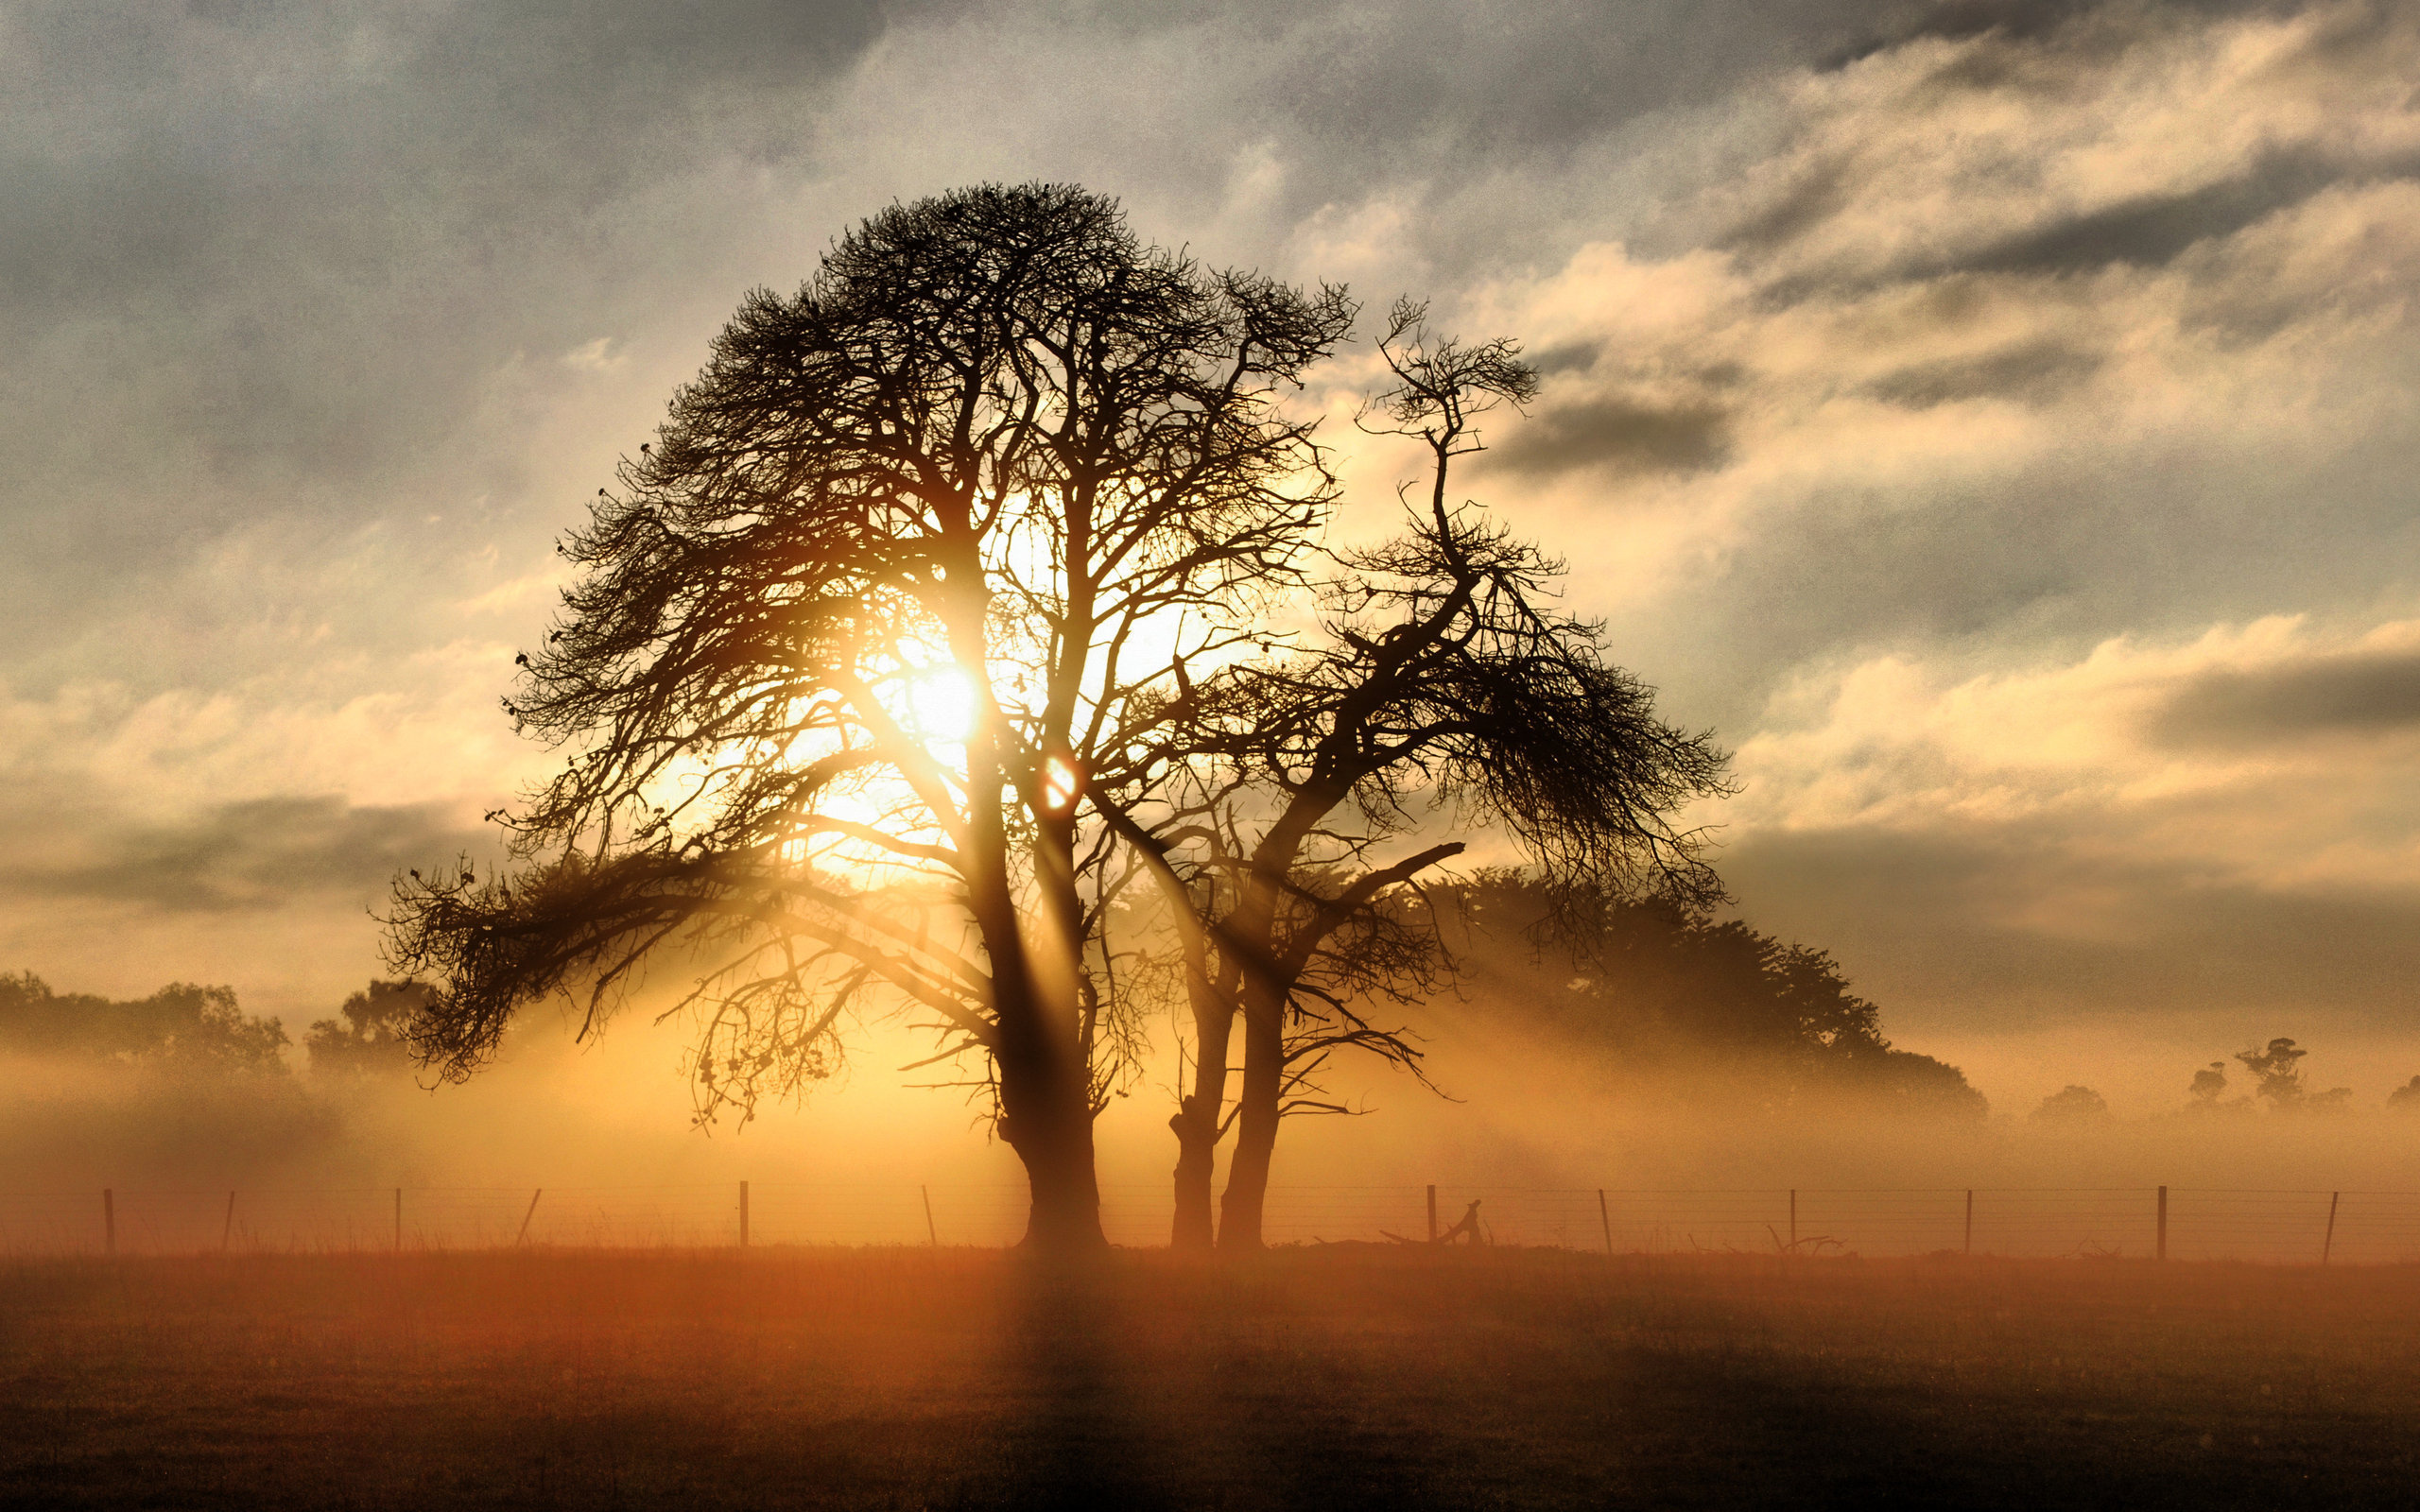 tree hd wallpapers - photo #26